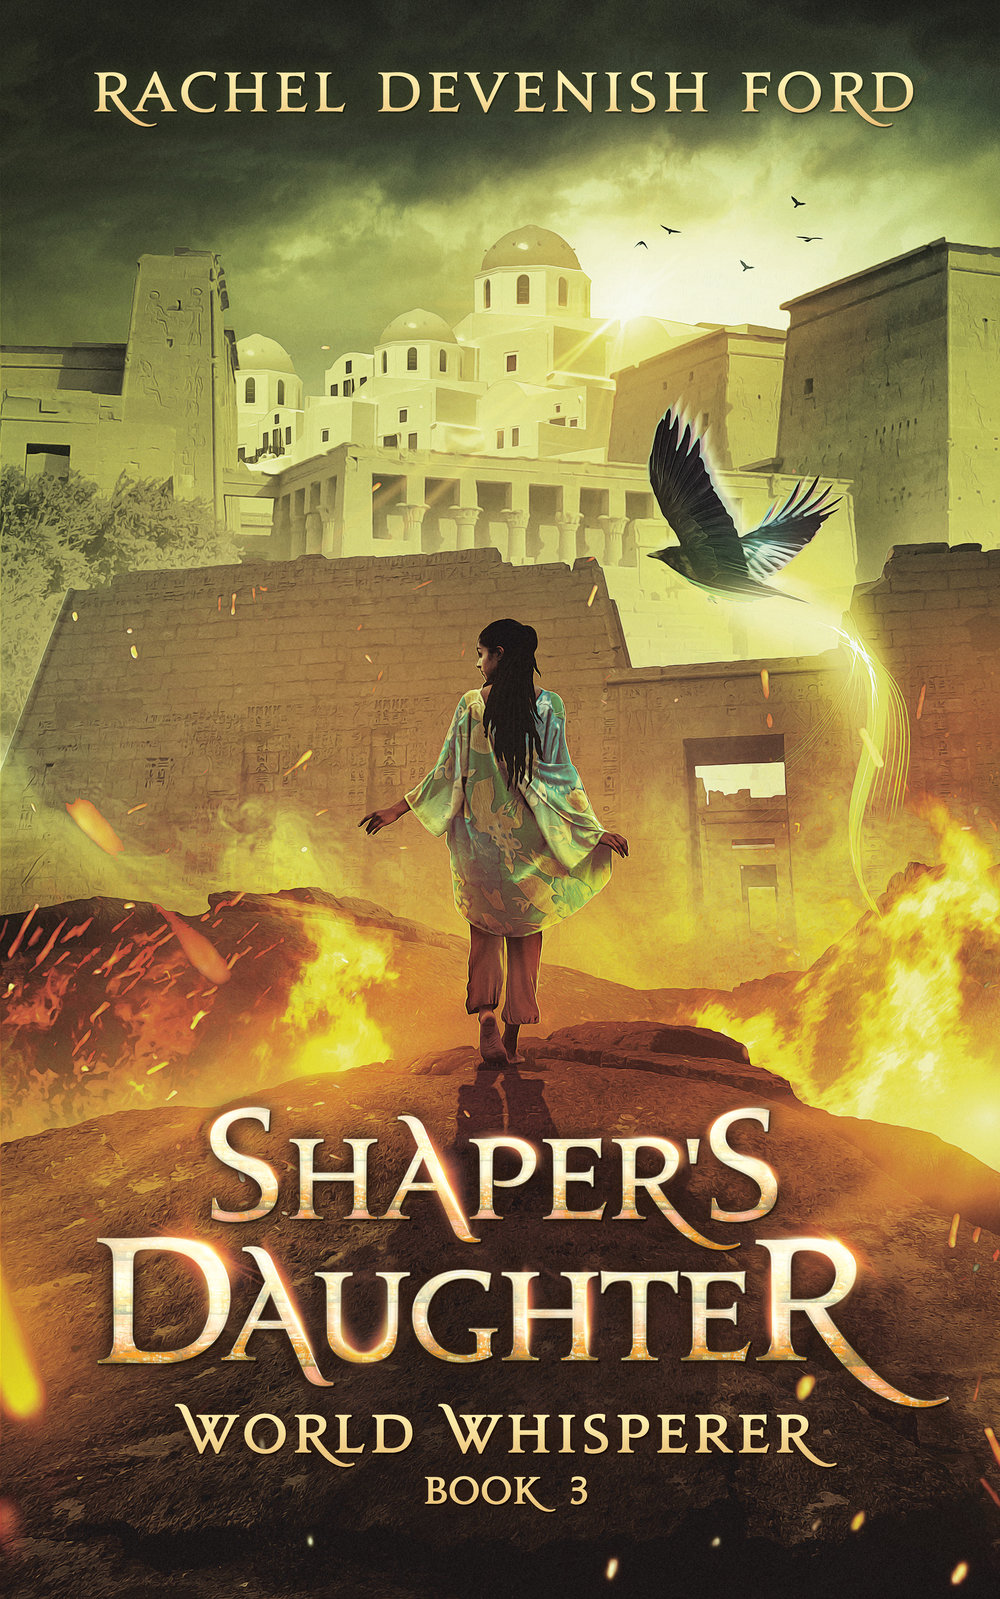 Shaper's Daughter - Ebook.jpg